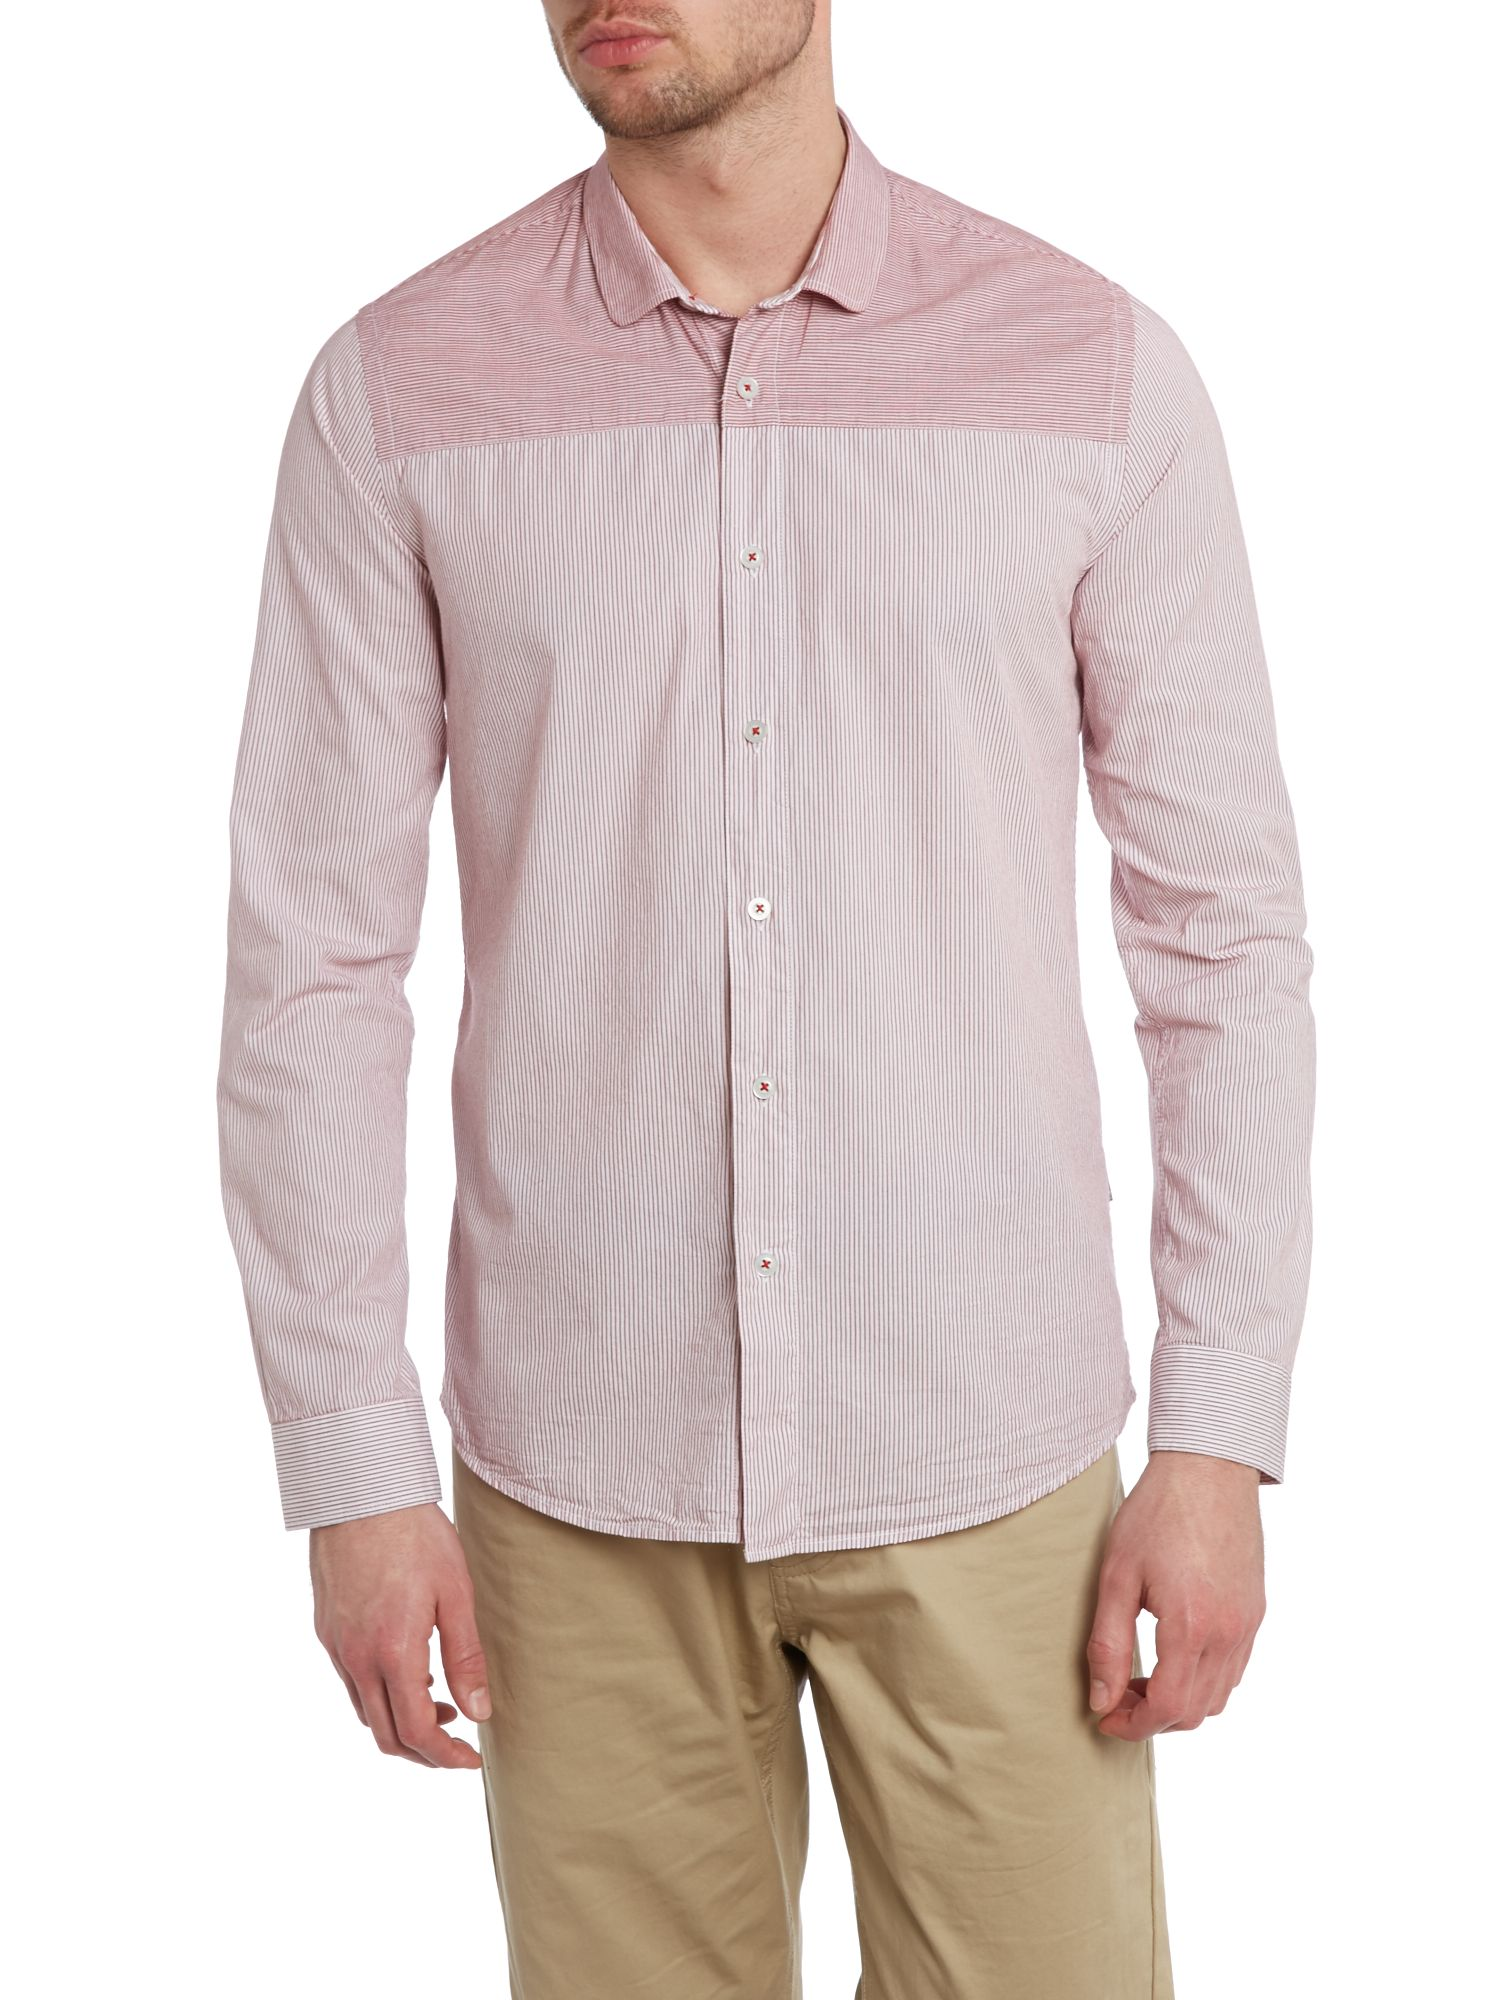 Indio penny stripe shirt